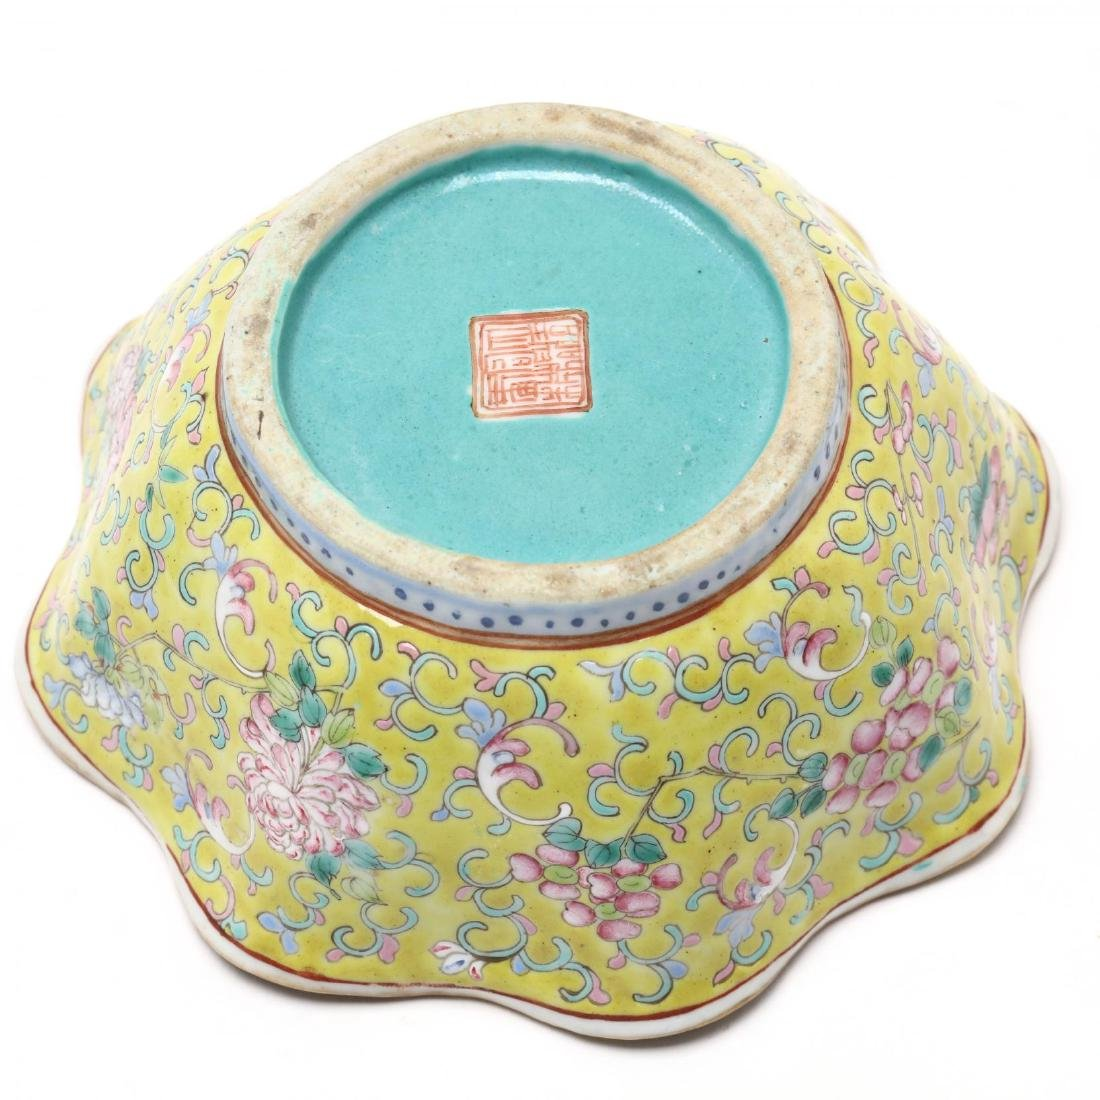 A Matched Pair of Chinese Porcelain Scalloped Bowls - 4